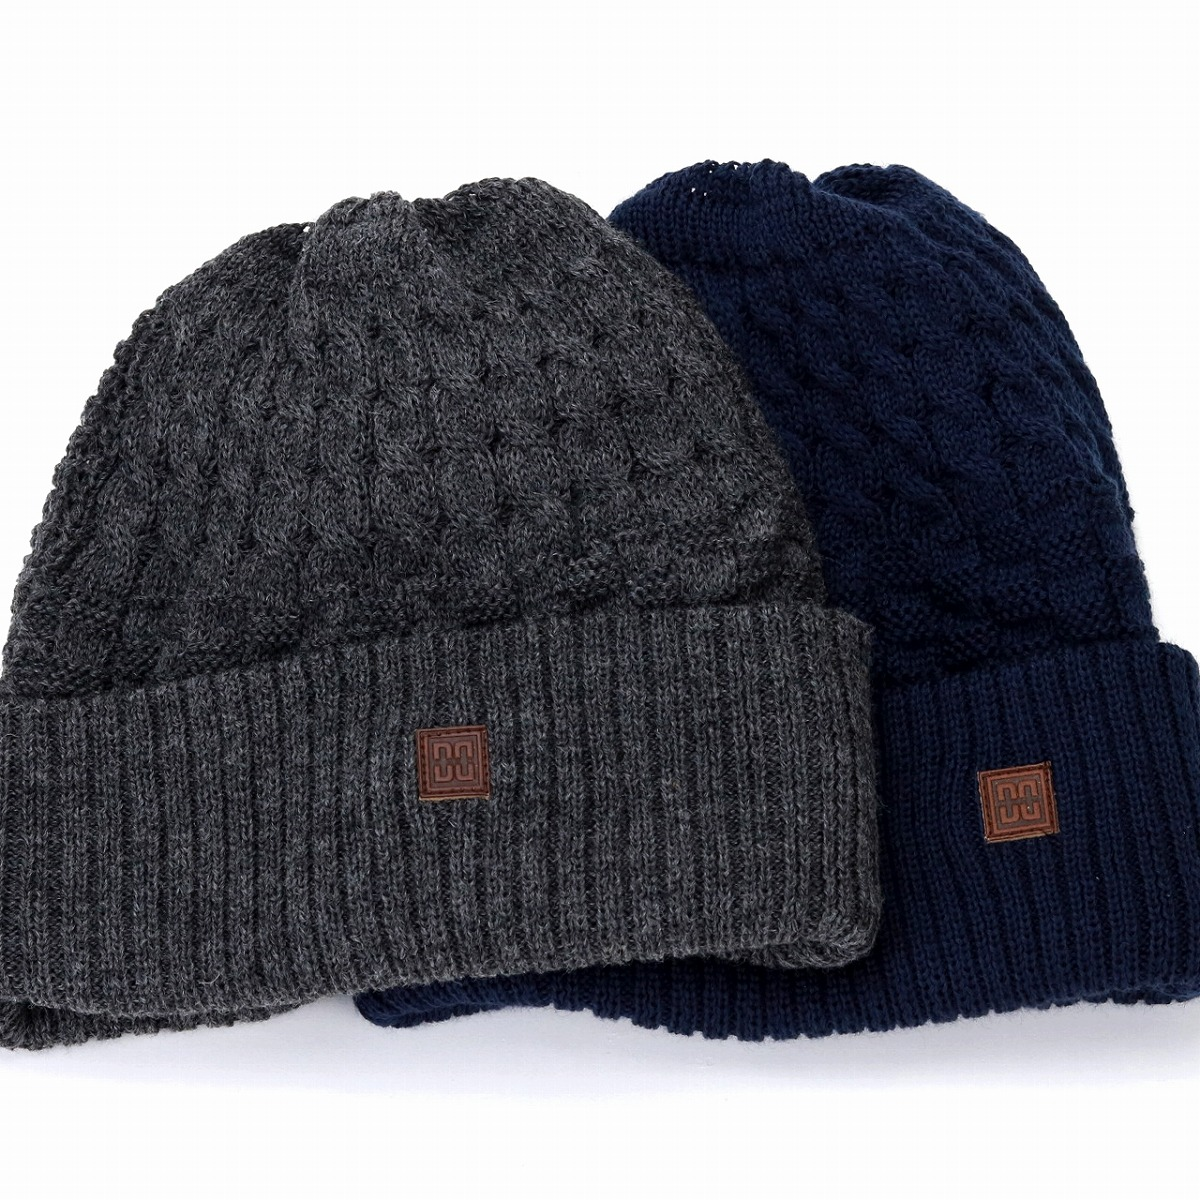 25d41628d7e Simple plain cold protection dark blue navy  beanie cap  man Christmas  present hat with ニットワッチタグ made in DAKS lapel ニットワッチ wool blend CADET48 ...